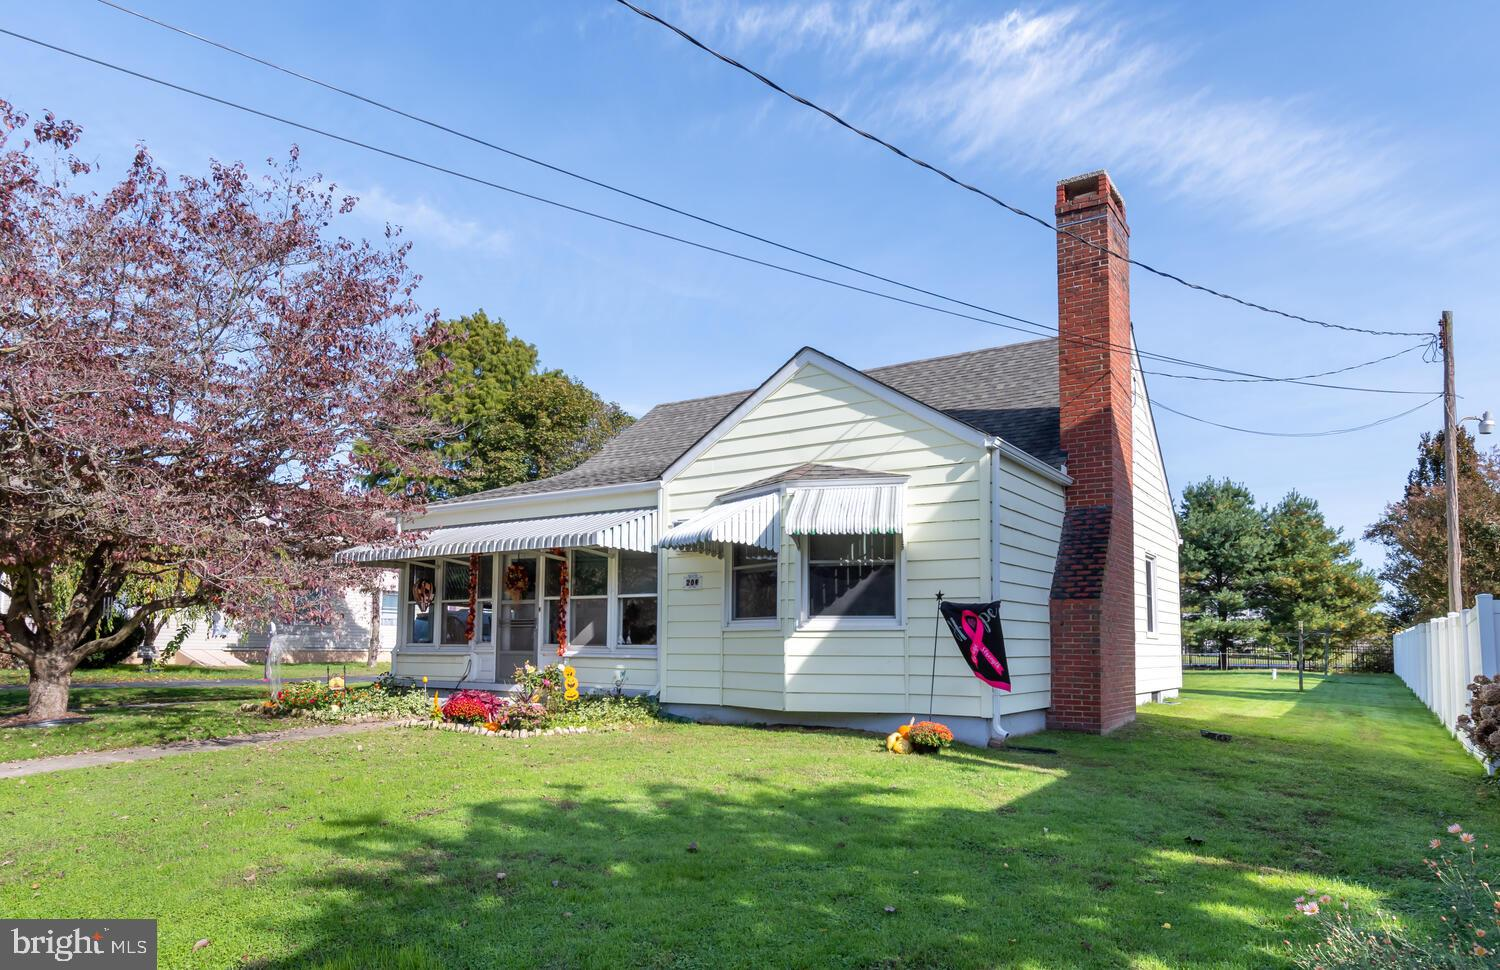 COME ENJOY SMALL TOWN LIFE ON THE SHORE.  CUTE 3 BED 1.5 BATH CAPE COD MUCH LARGER THAN IT APPEARS (